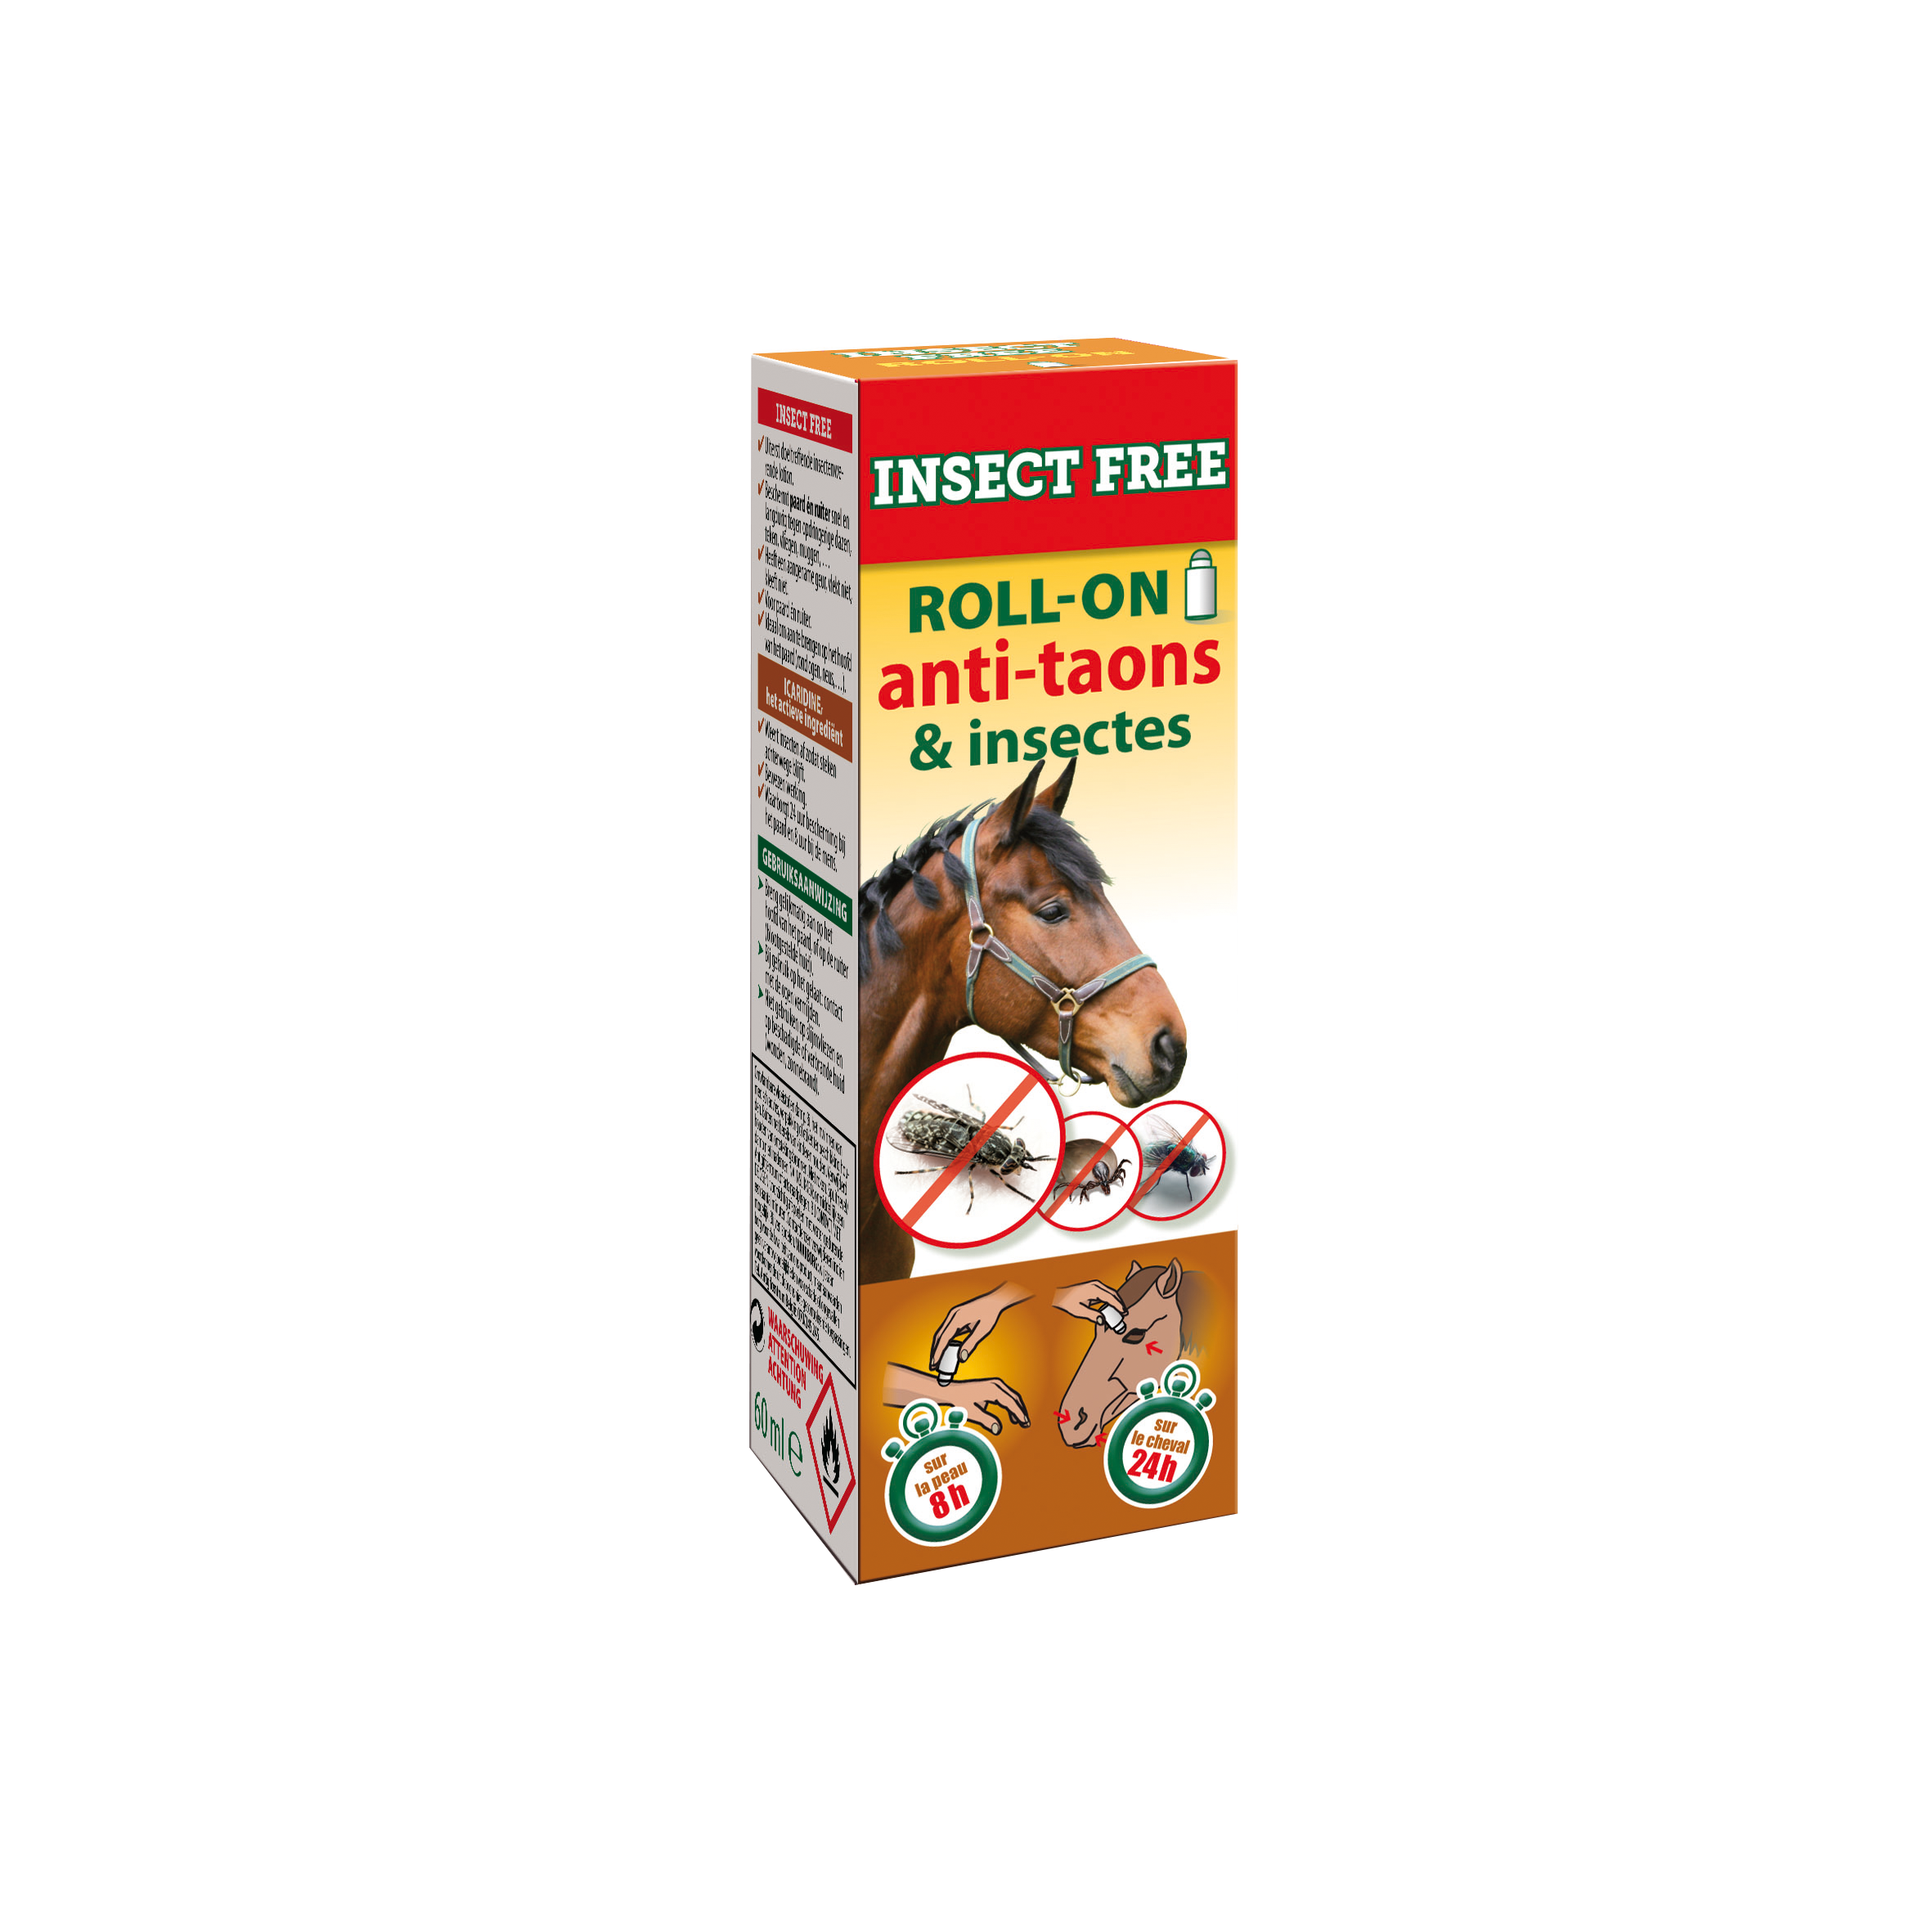 Insect Free Roll On Anti-Taons BE 60 ml image